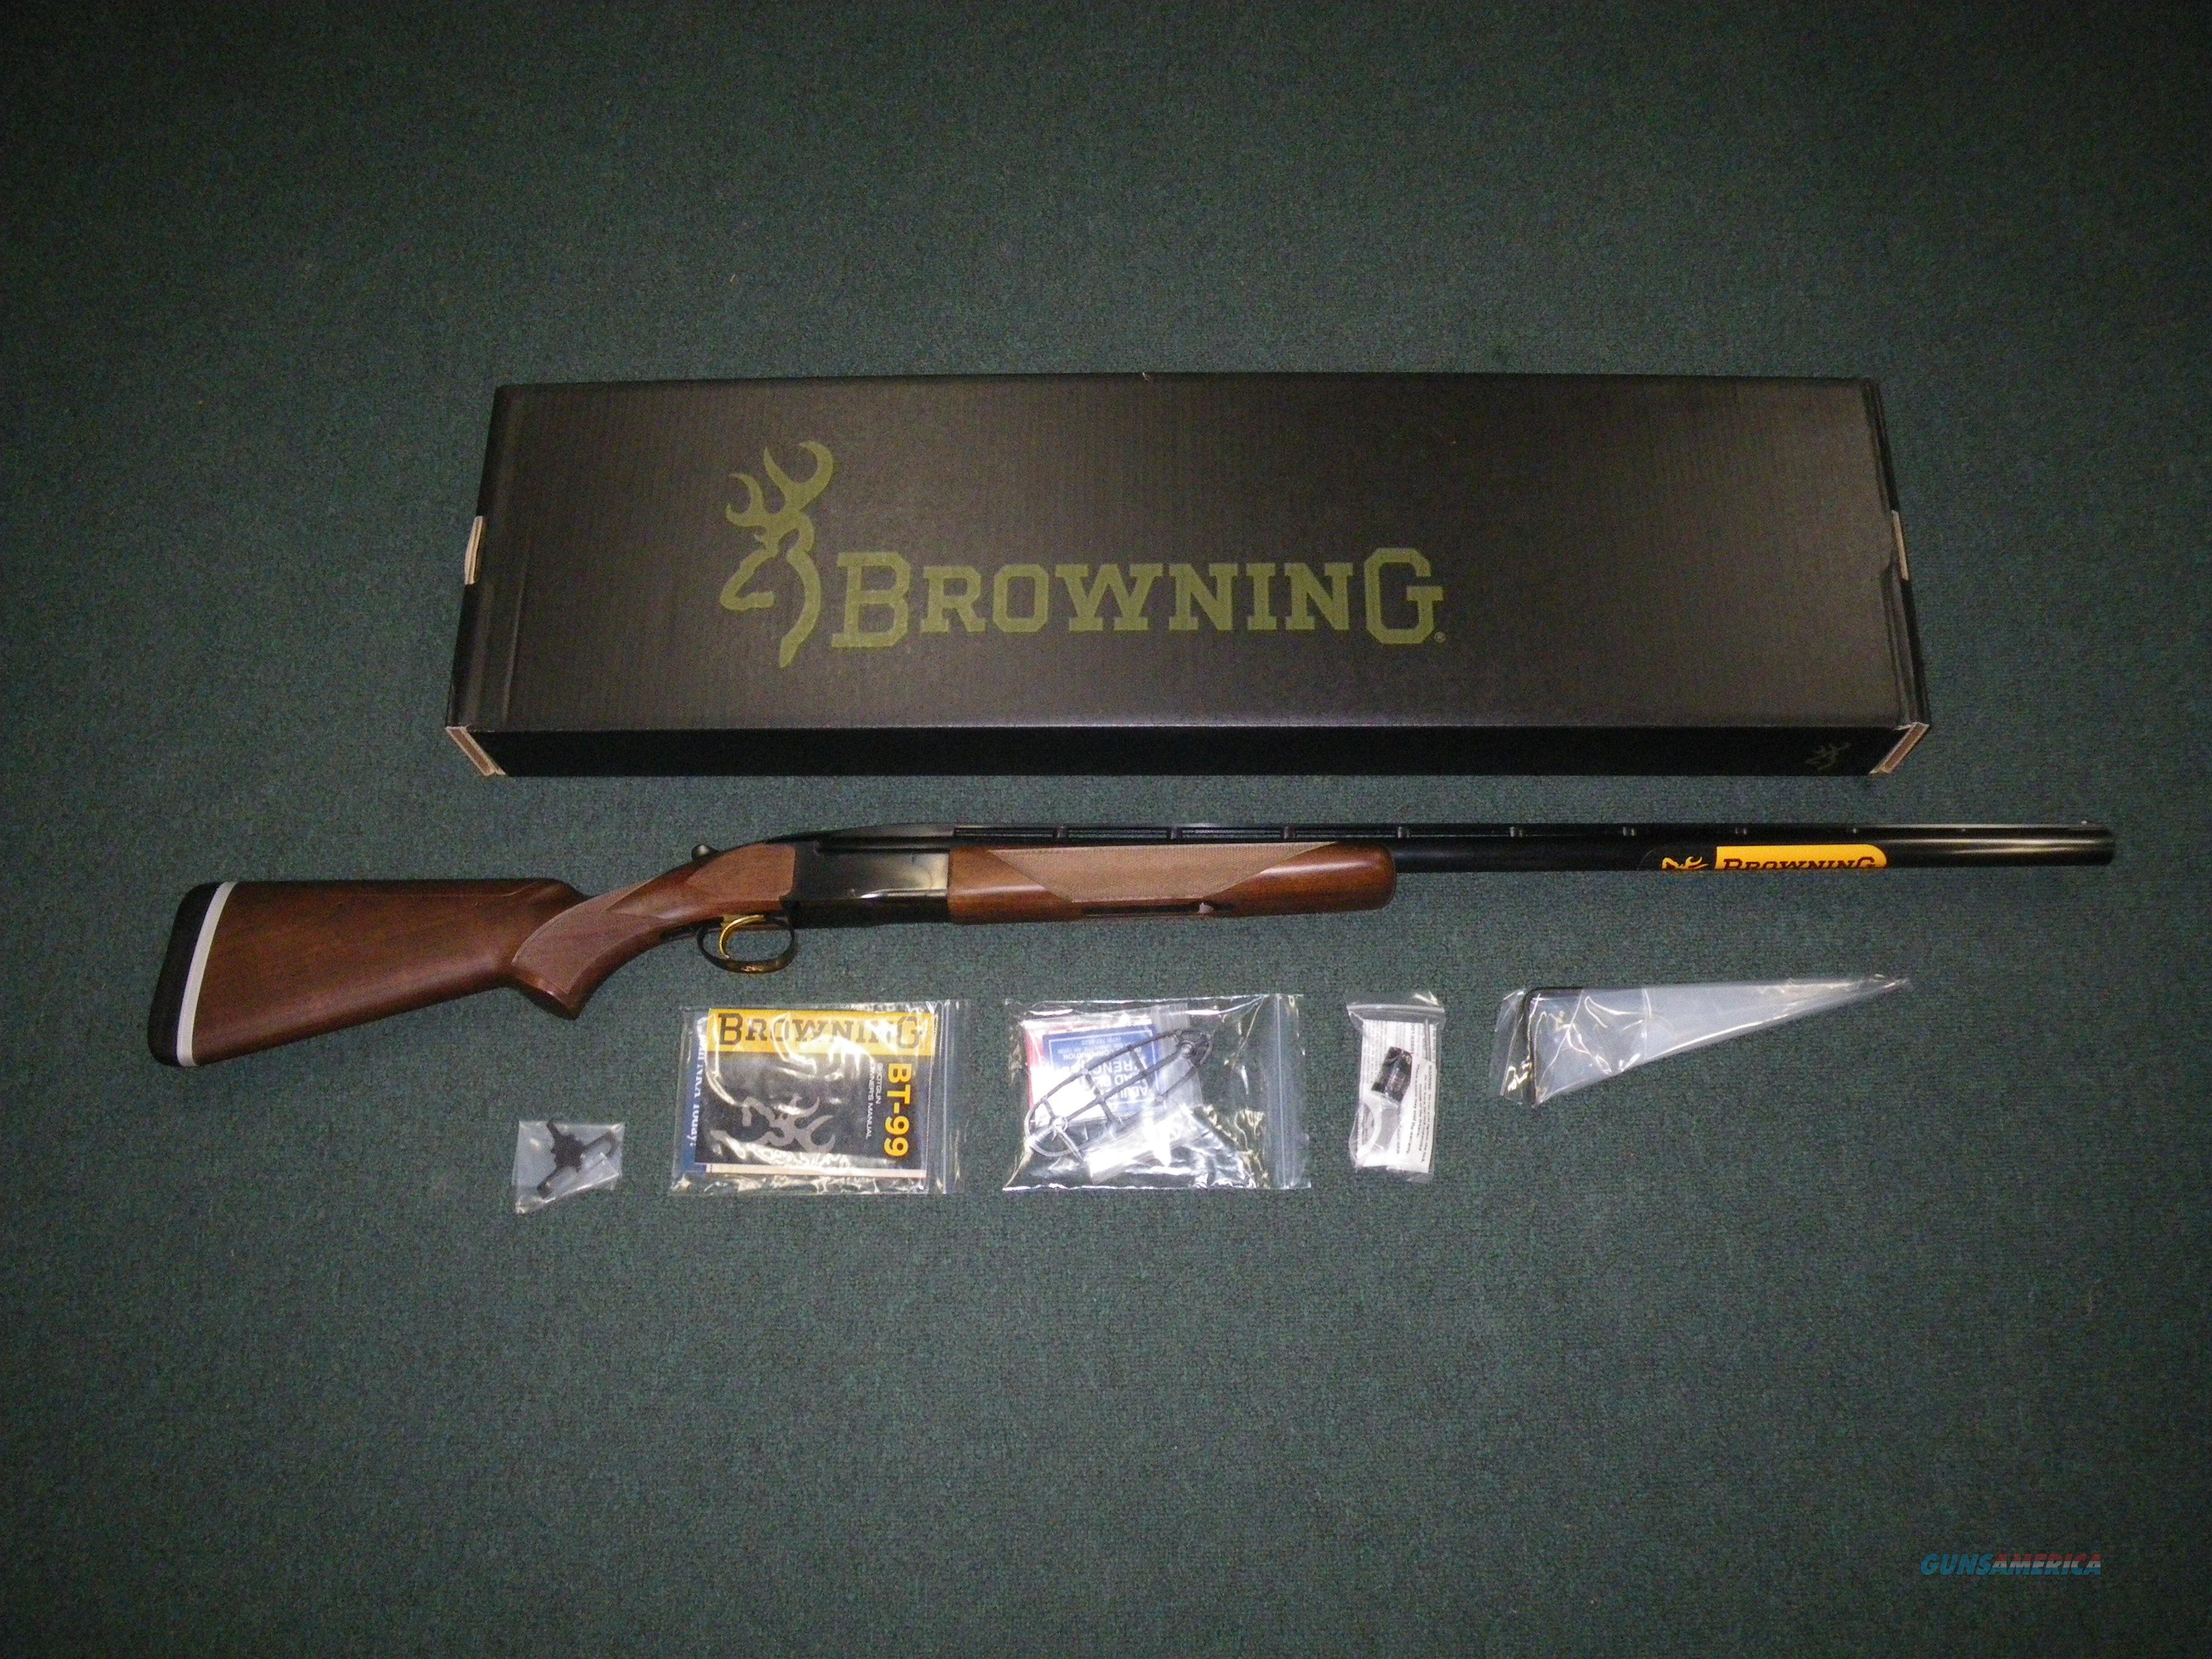 "Browning BT-99 Adjustable Comb 12ga 32"" 2-3/4"" NEW #017081402  Guns > Shotguns > Browning Shotguns > Single Barrel"